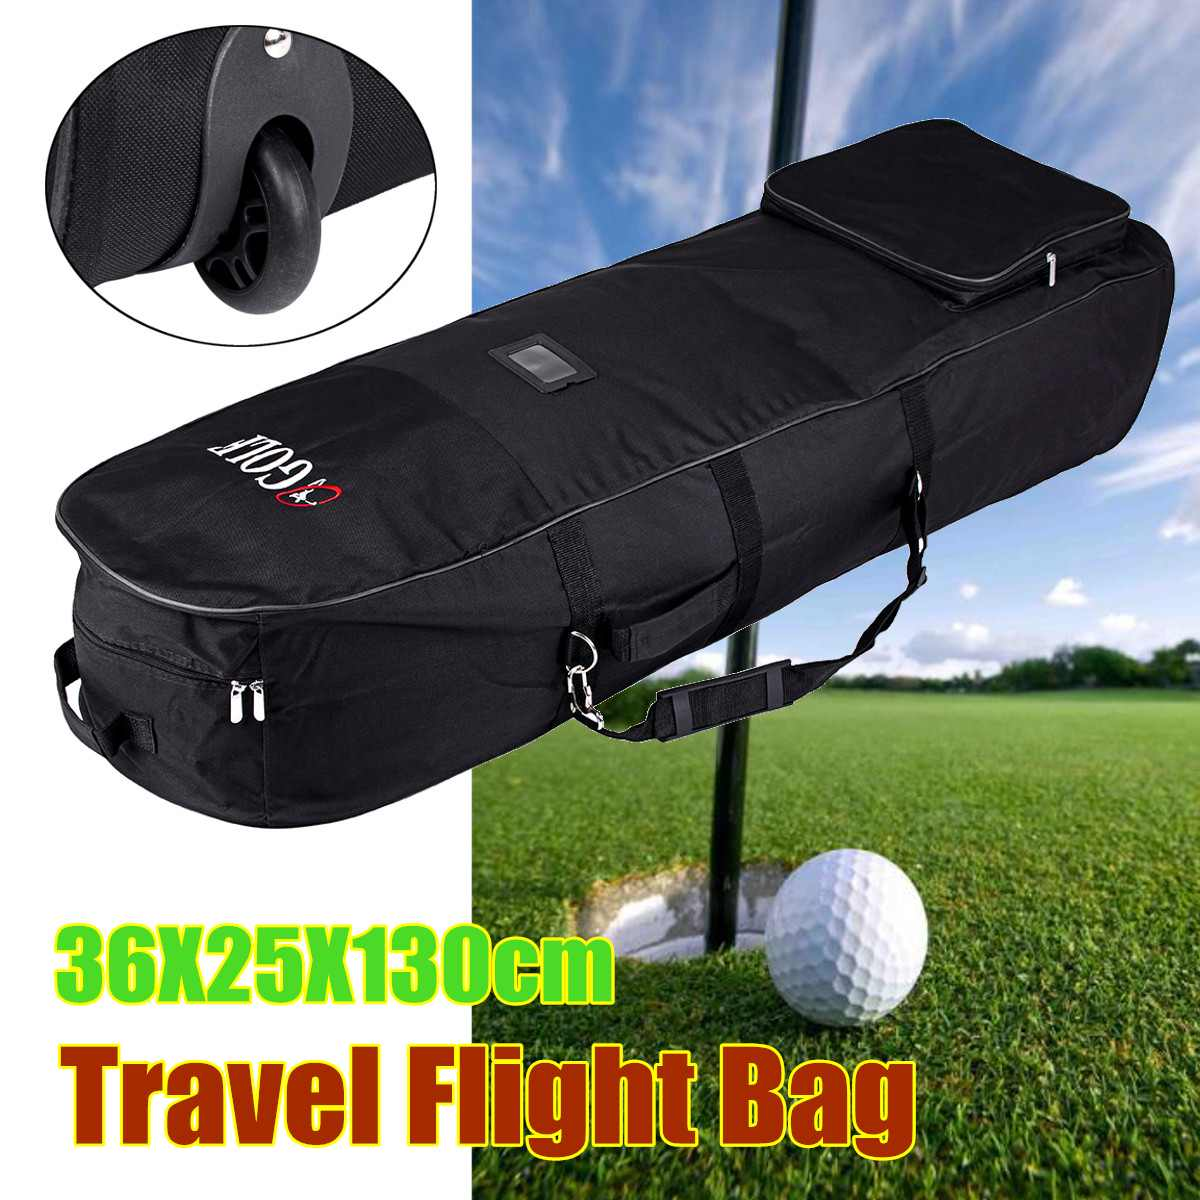 Portable Golf Clubs Aviation Bag Waterproof Nylon Folding Travel Flight Bag Cover with Wheels Golf Accessories Sports BagPortable Golf Clubs Aviation Bag Waterproof Nylon Folding Travel Flight Bag Cover with Wheels Golf Accessories Sports Bag